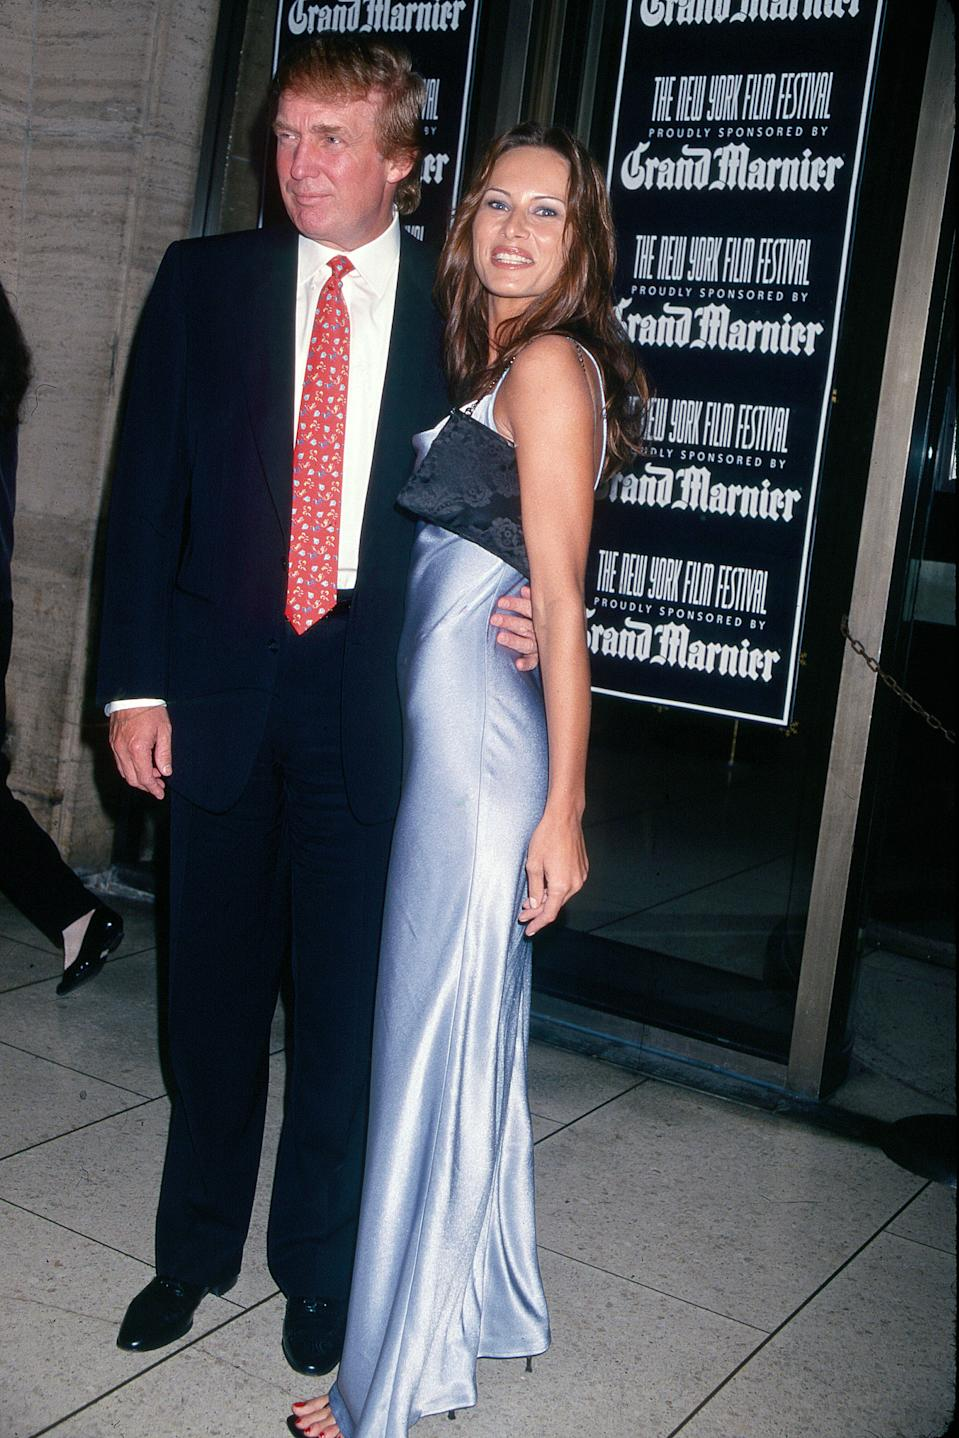 Portrait of American businessman Donald Trump and Melania Knauss (born Melanija Knavs) as they attend the New York Film Festival at Lincoln Center, New York, New York, 1998. (Photo by Rose Hartman/Getty Images)